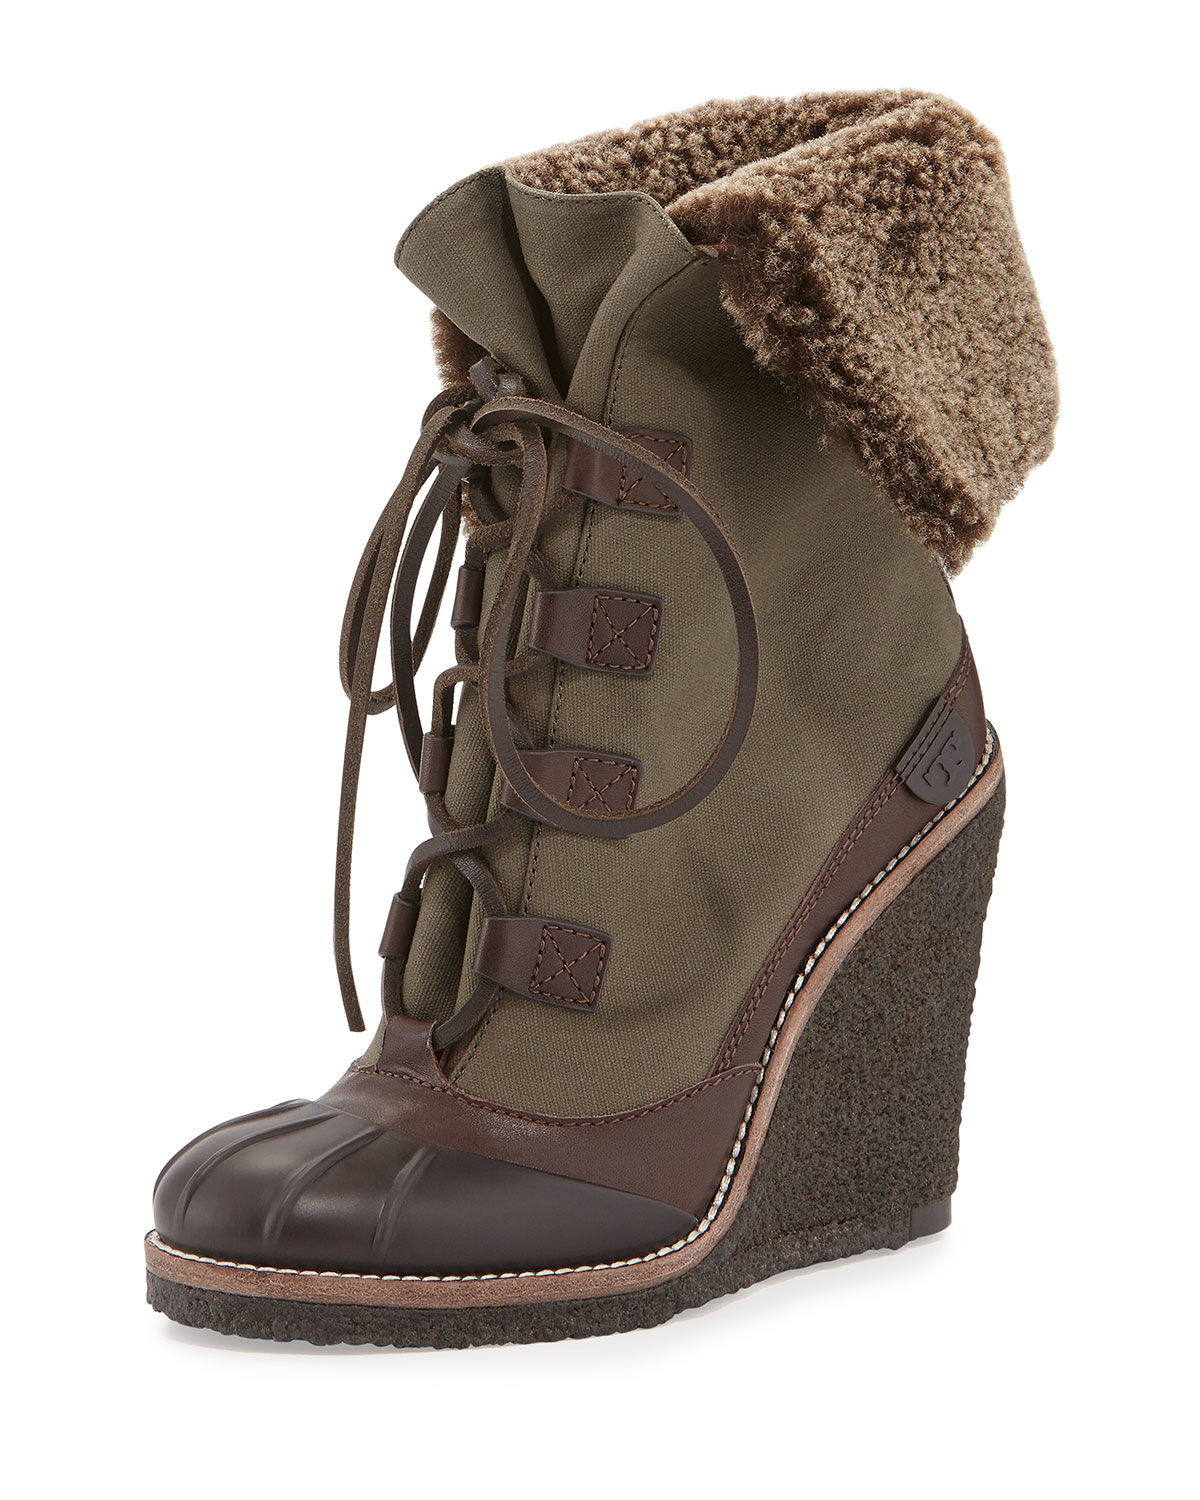 590437d9e04b9 Lyst - Tory Burch Fairfax Shearling-Lined Wedge Boot in Brown